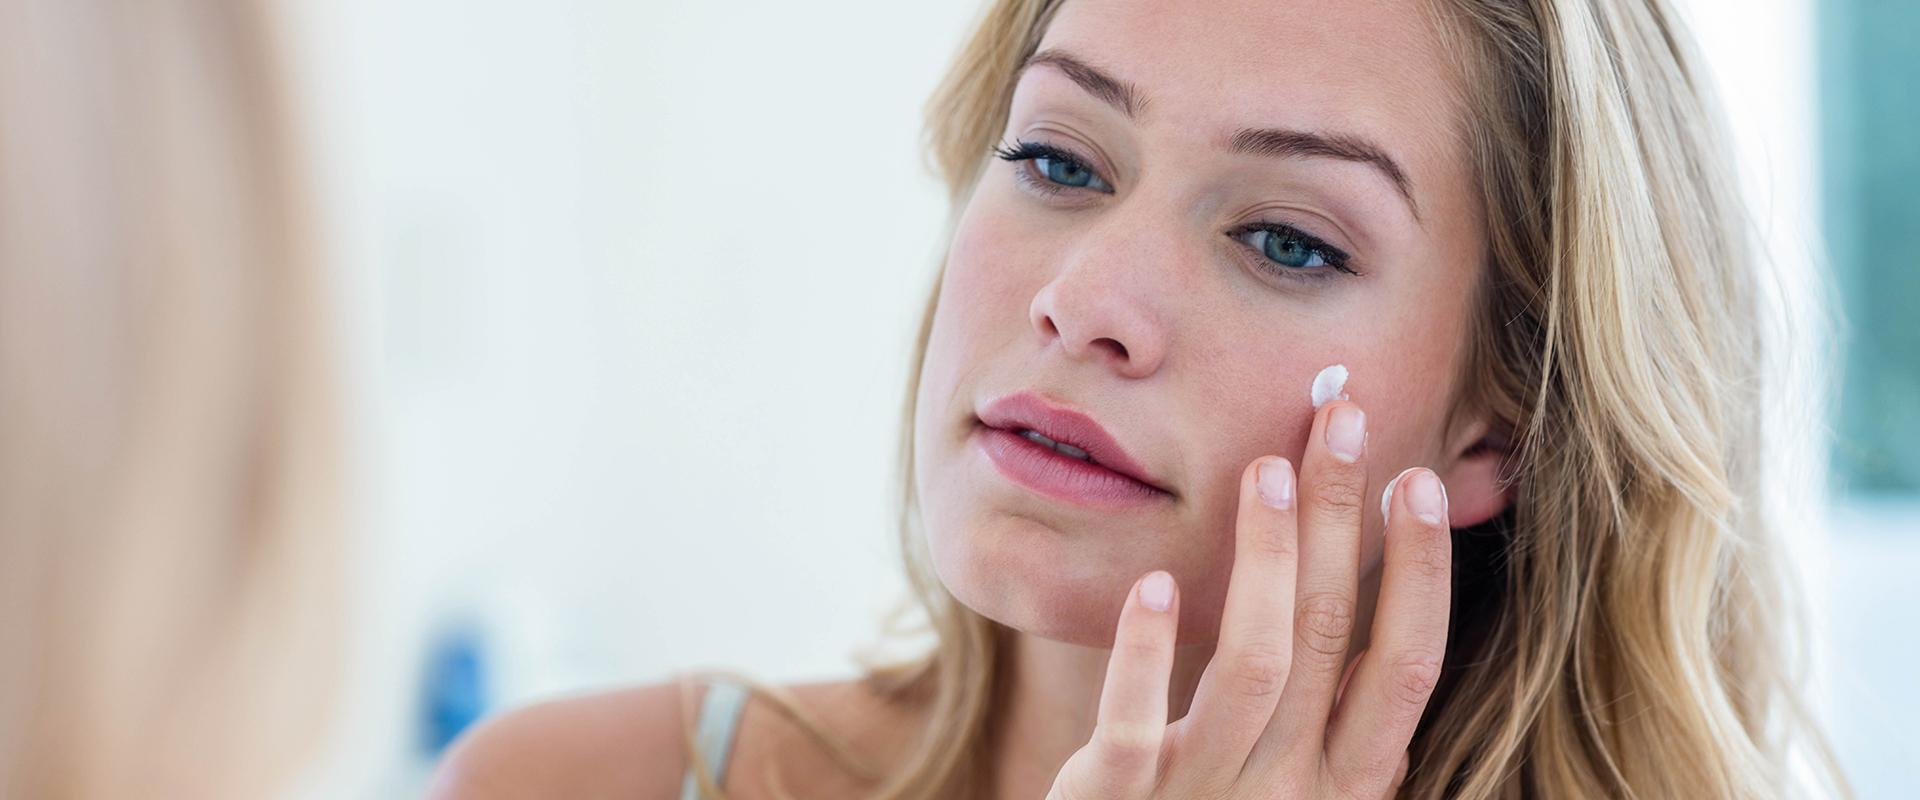 5 Powerful Anti-Aging Skin Care Ingredients You Should Know